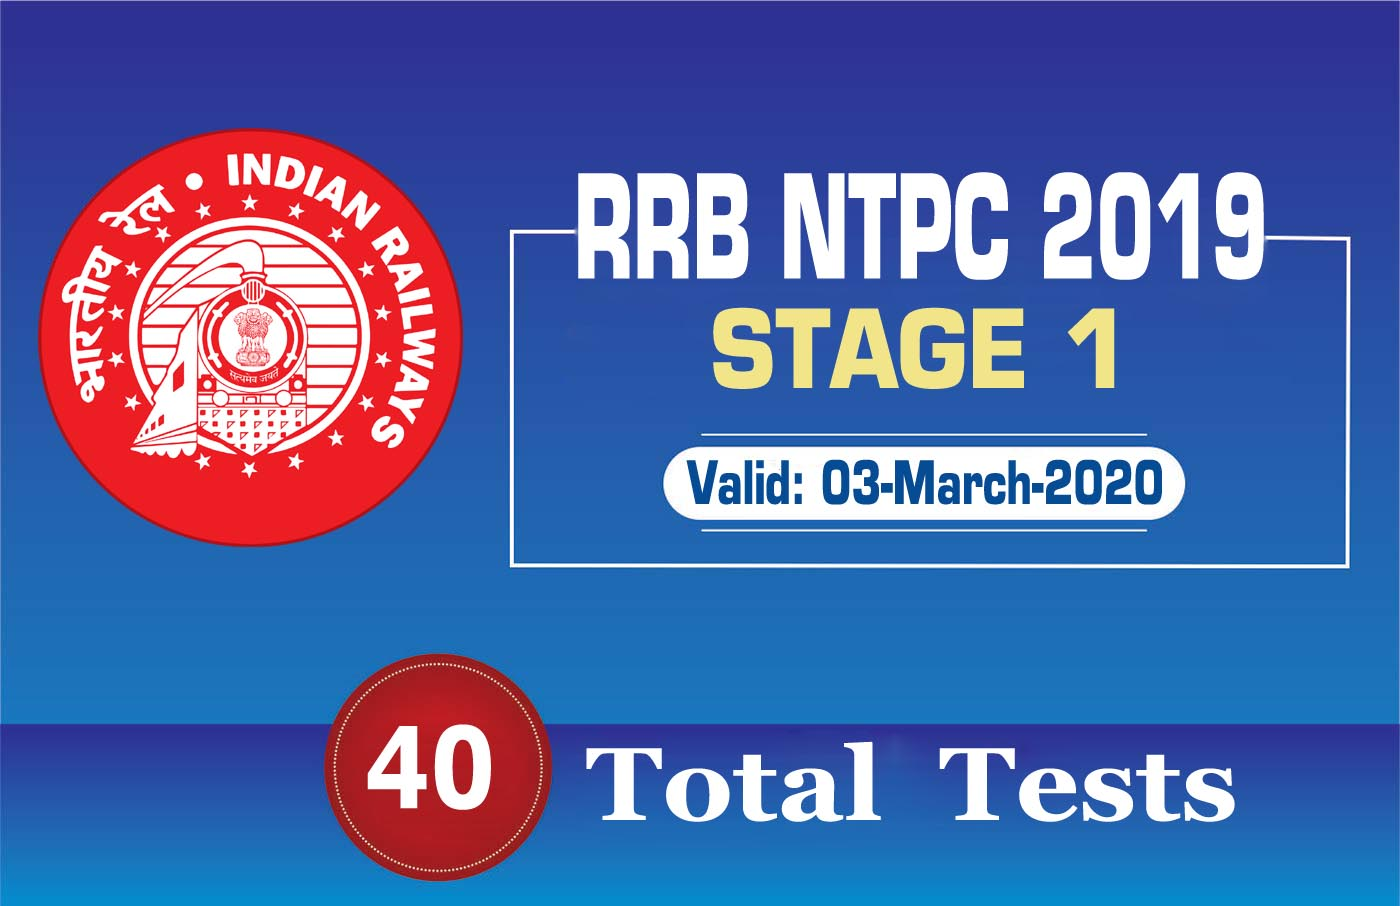 RRB NTPC 2019 STAGE 1